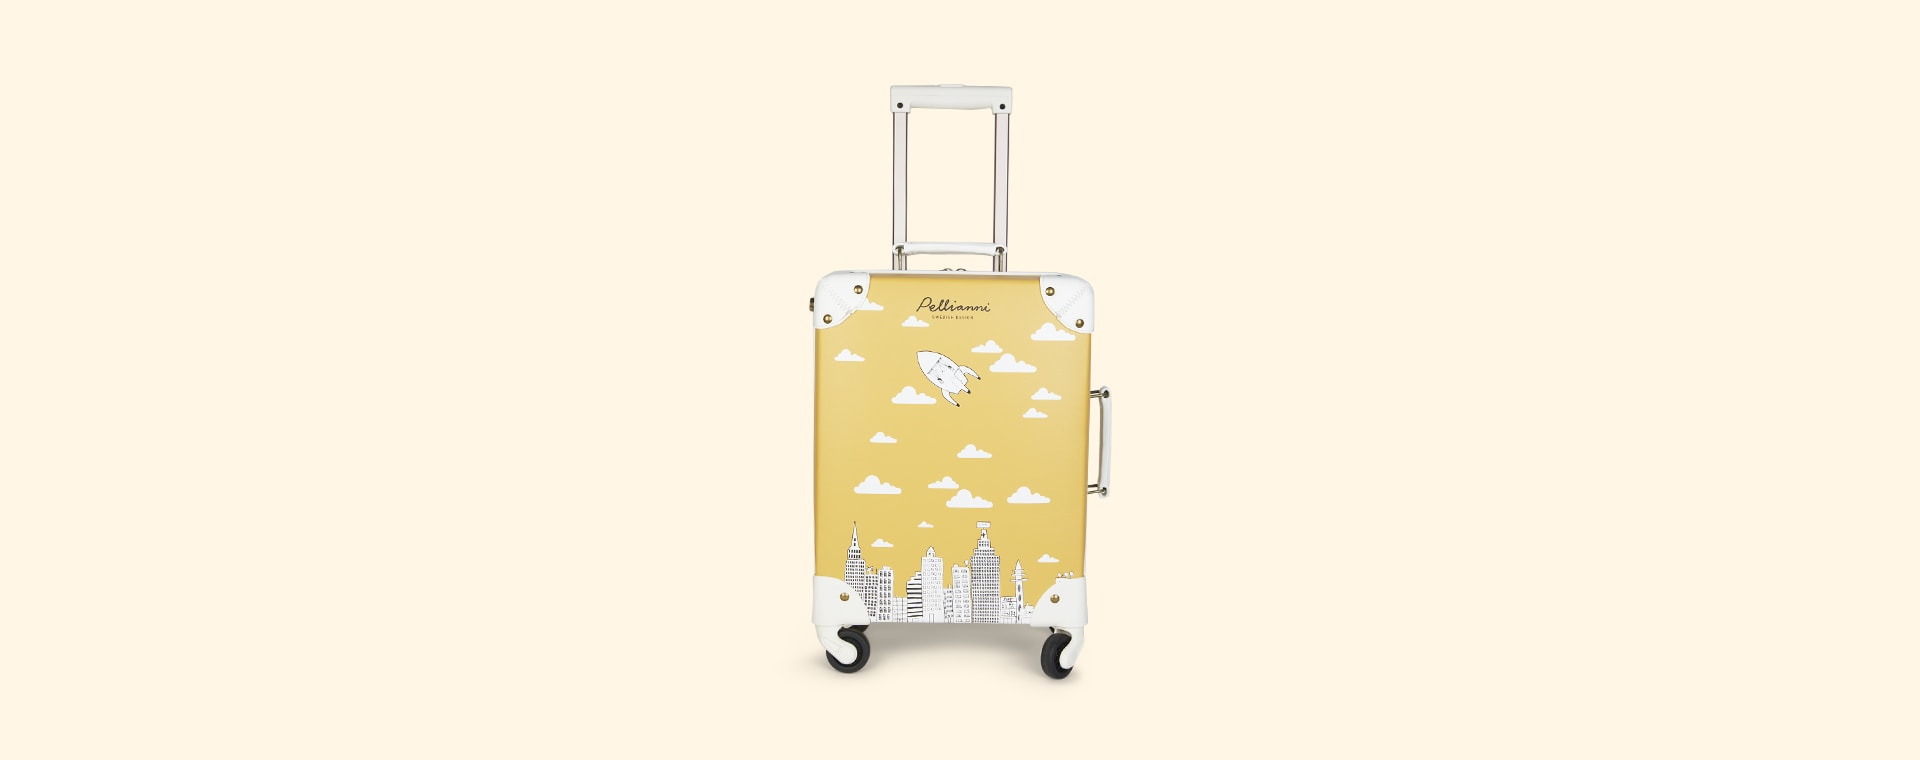 Sun Pellianni City Suitcase